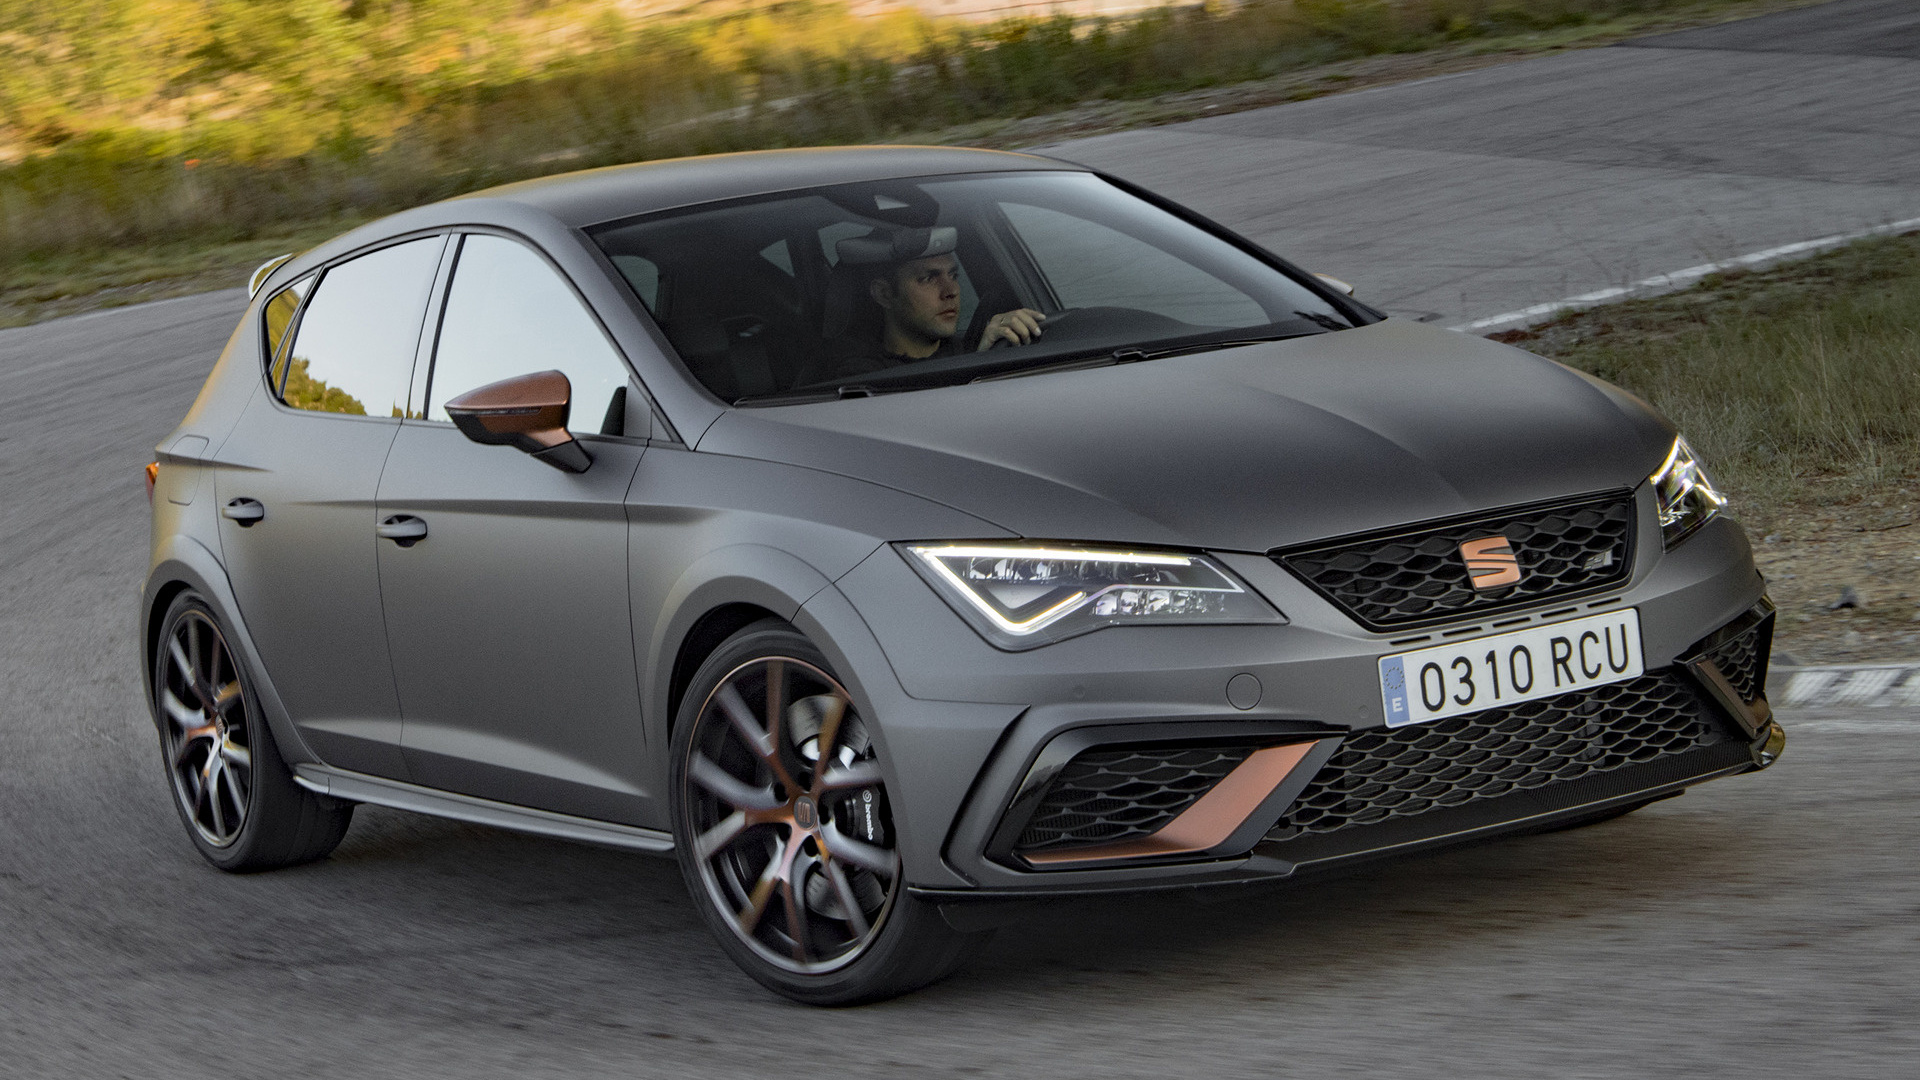 seat leon cupra r 2017 wallpapers and hd images car pixel. Black Bedroom Furniture Sets. Home Design Ideas